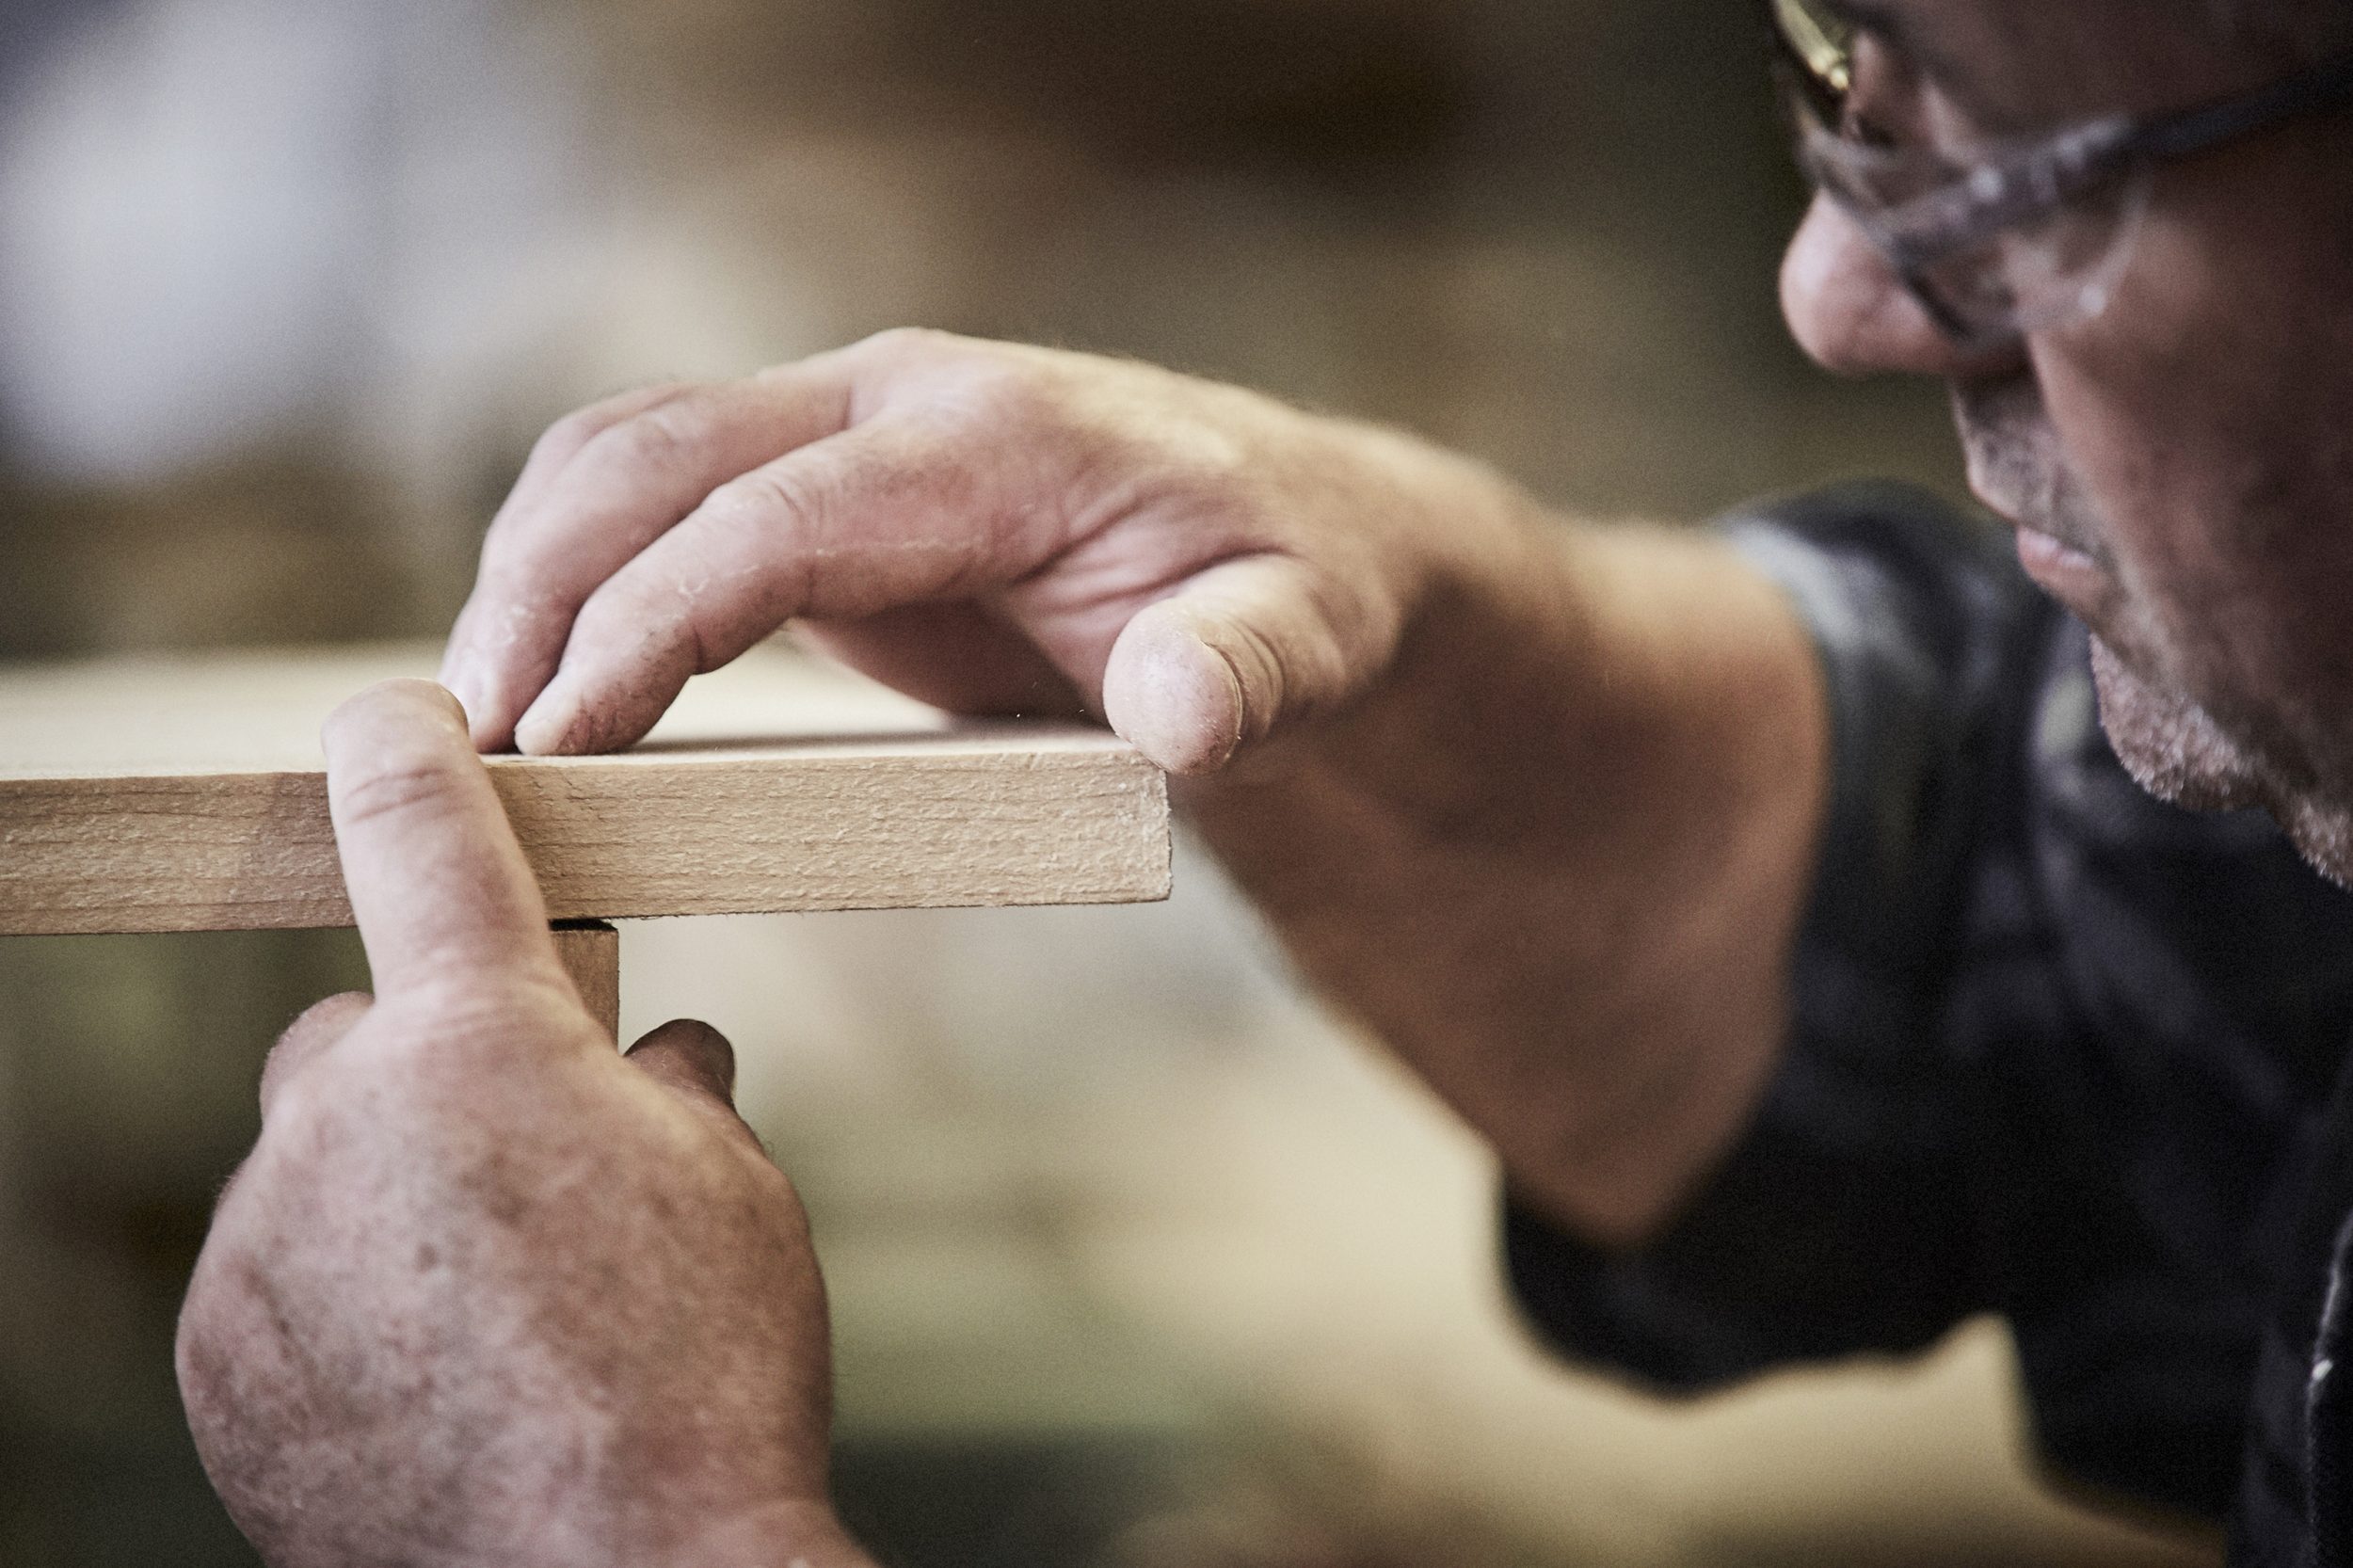 furniture made by hand